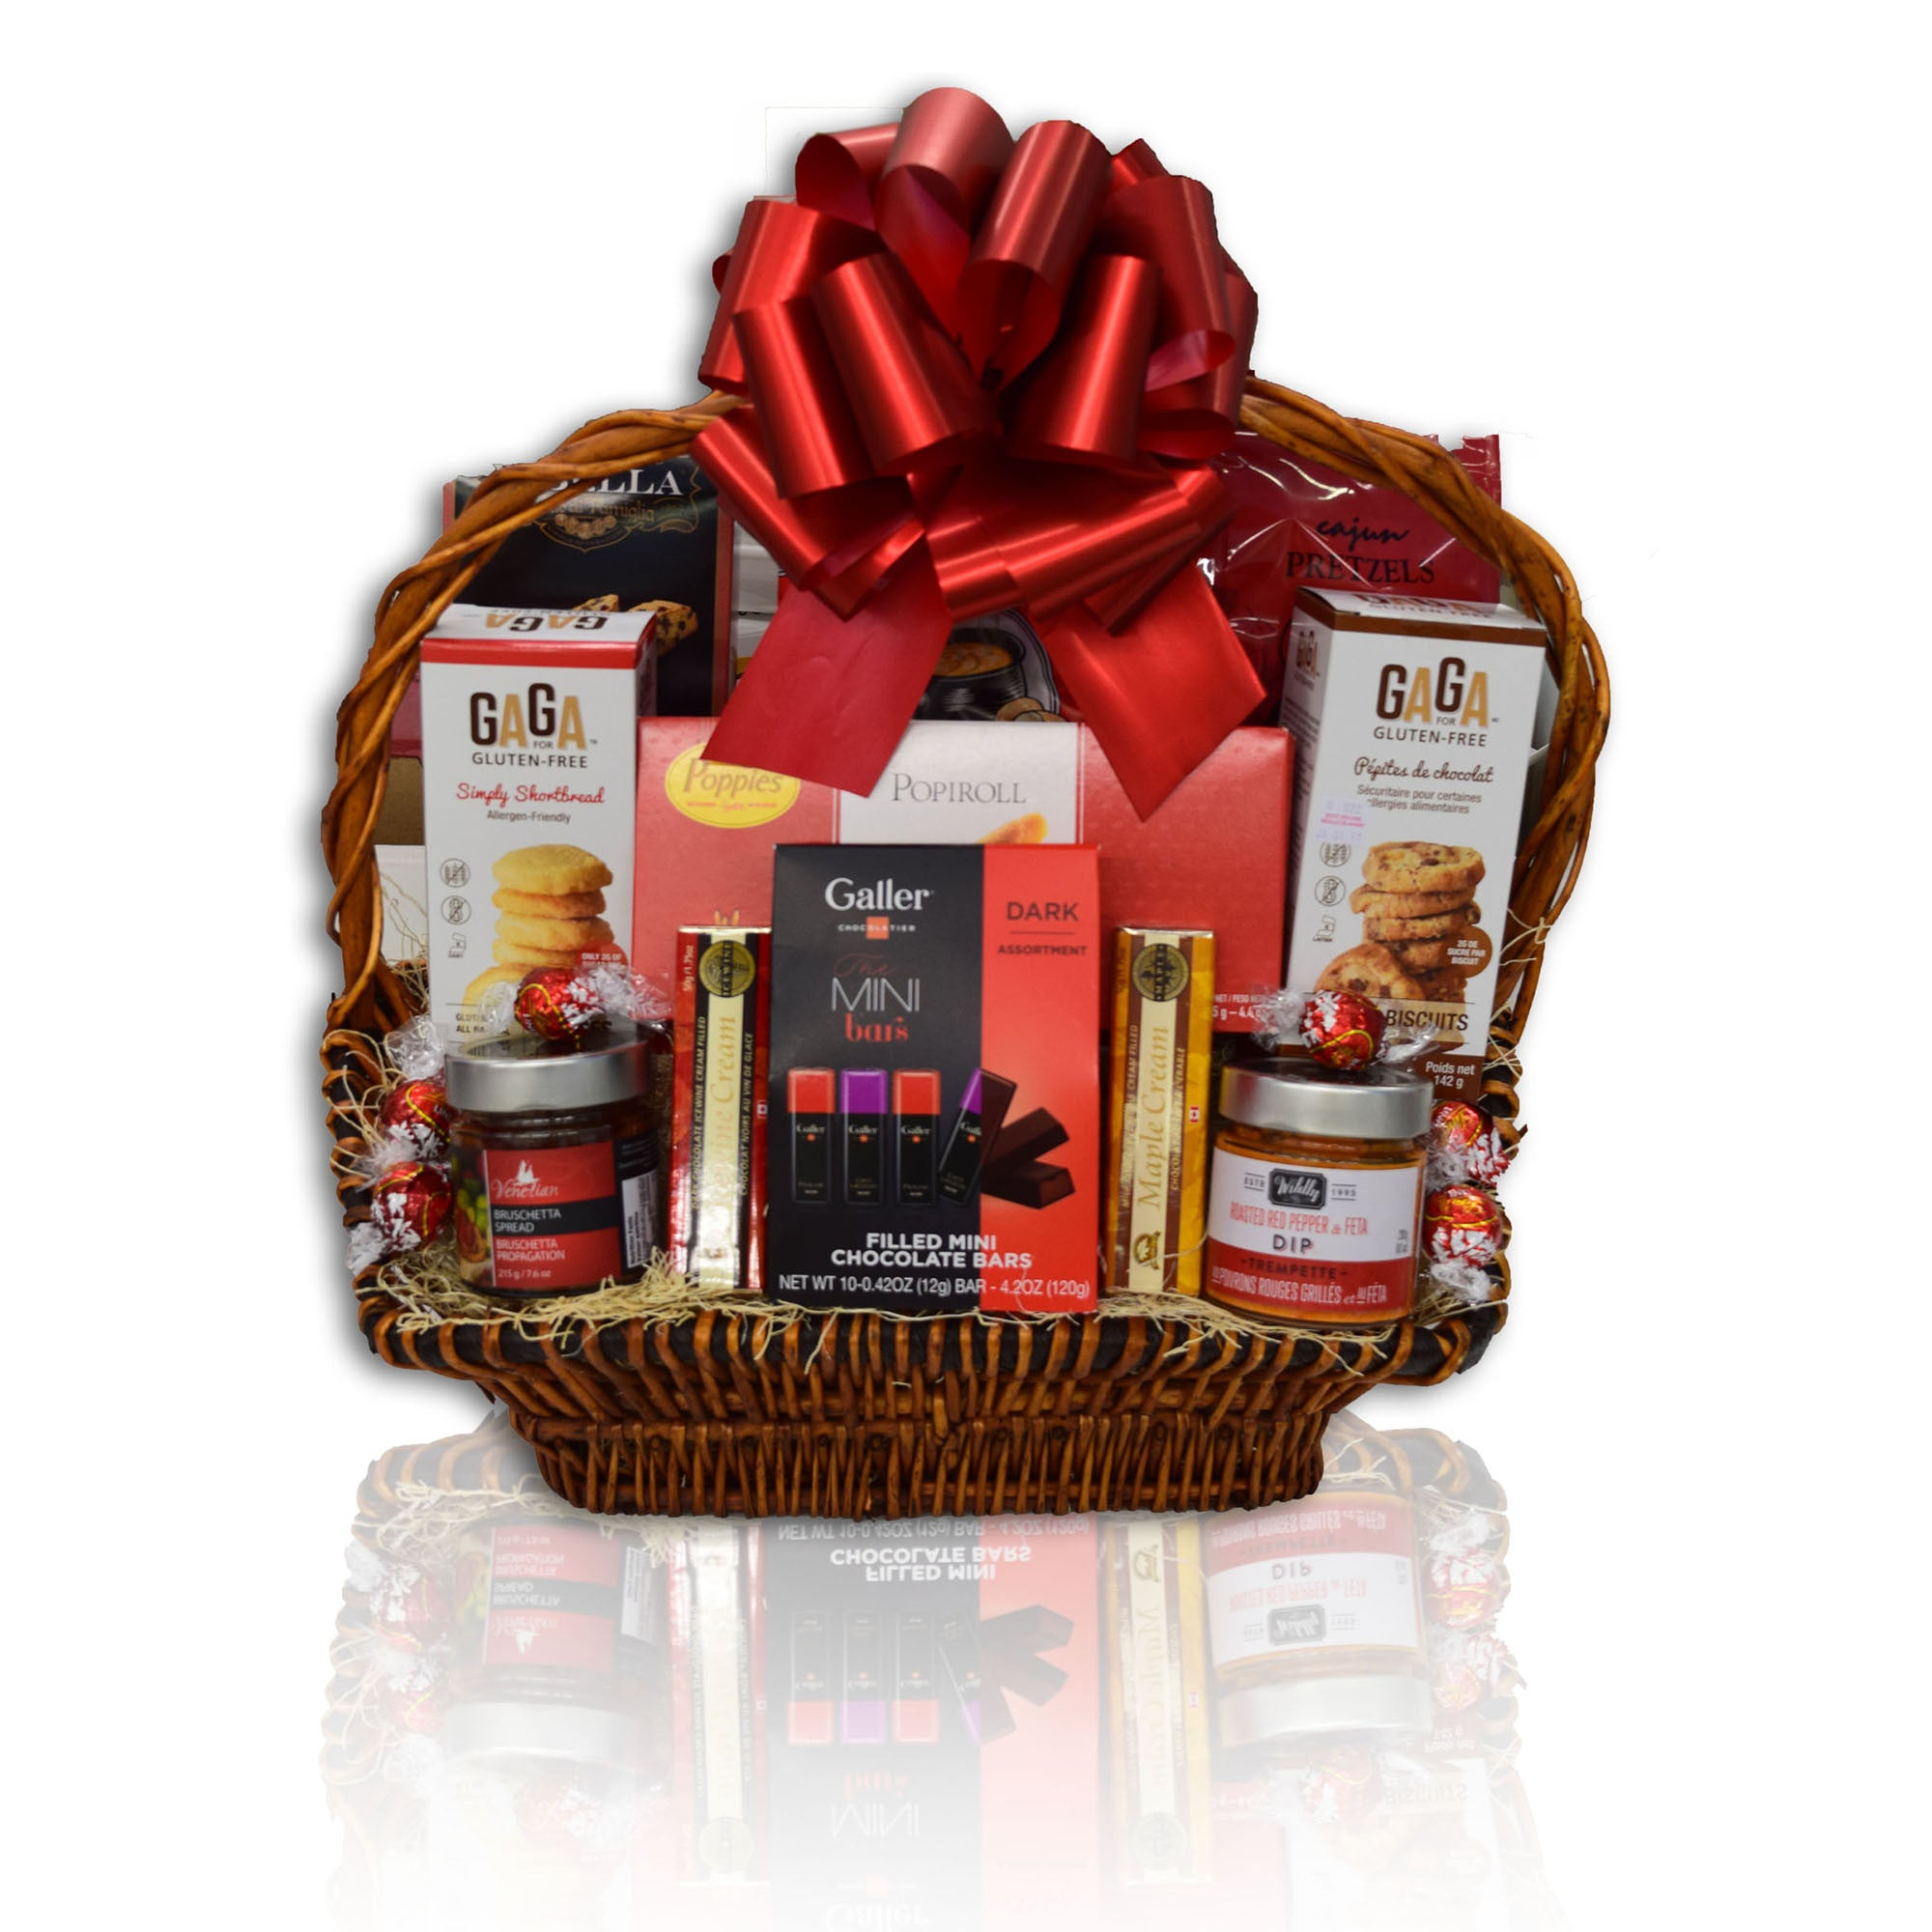 Gift basket supplies gourmet foods wholesale cutting boards extravaganza wholesale gift basket baskets and boards negle Choice Image